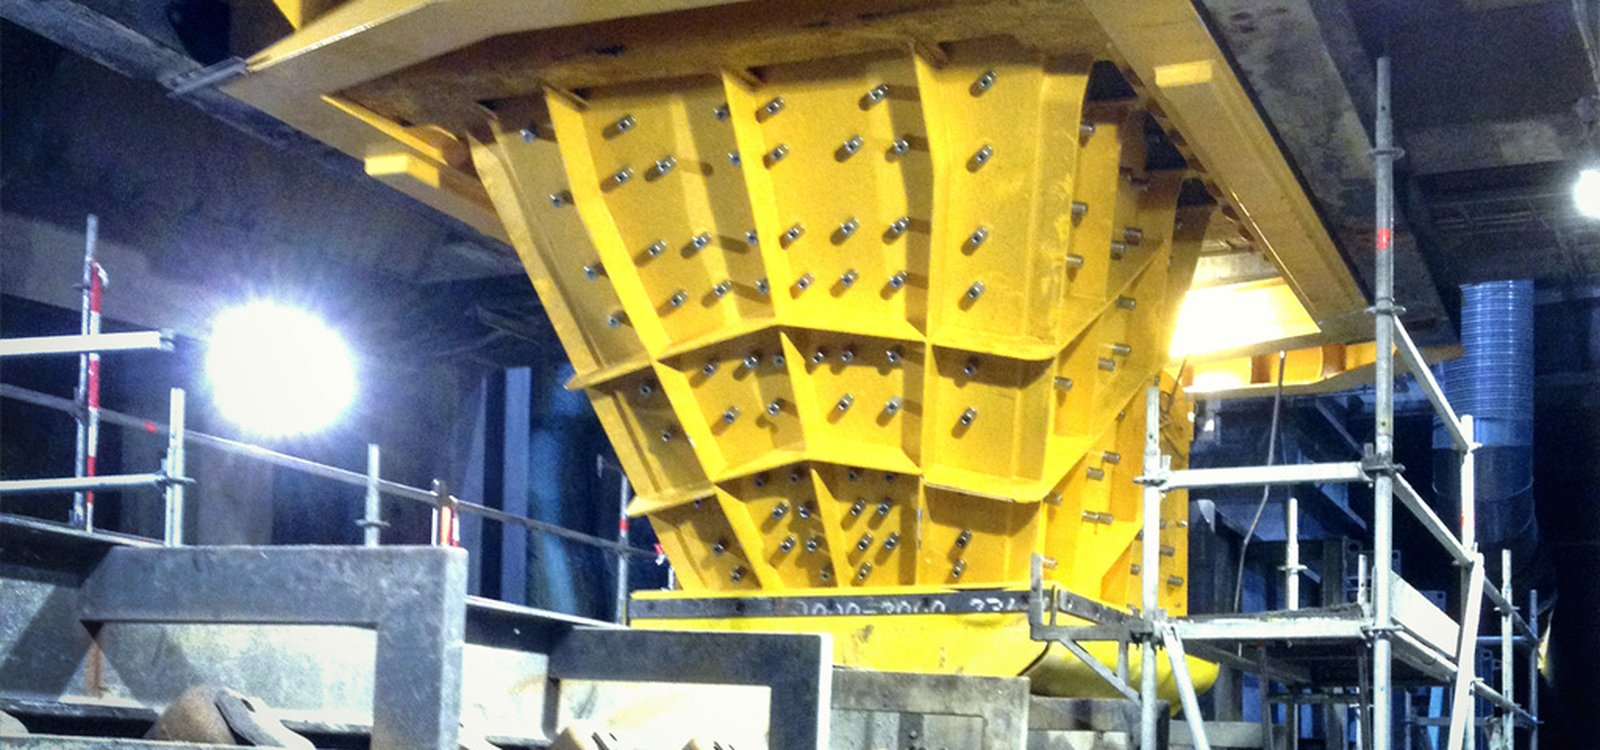 <p>Previous chutes required maintenance staff to shut down production and enter the chute for inspection, potentially putting themselves in harm's way.</p>